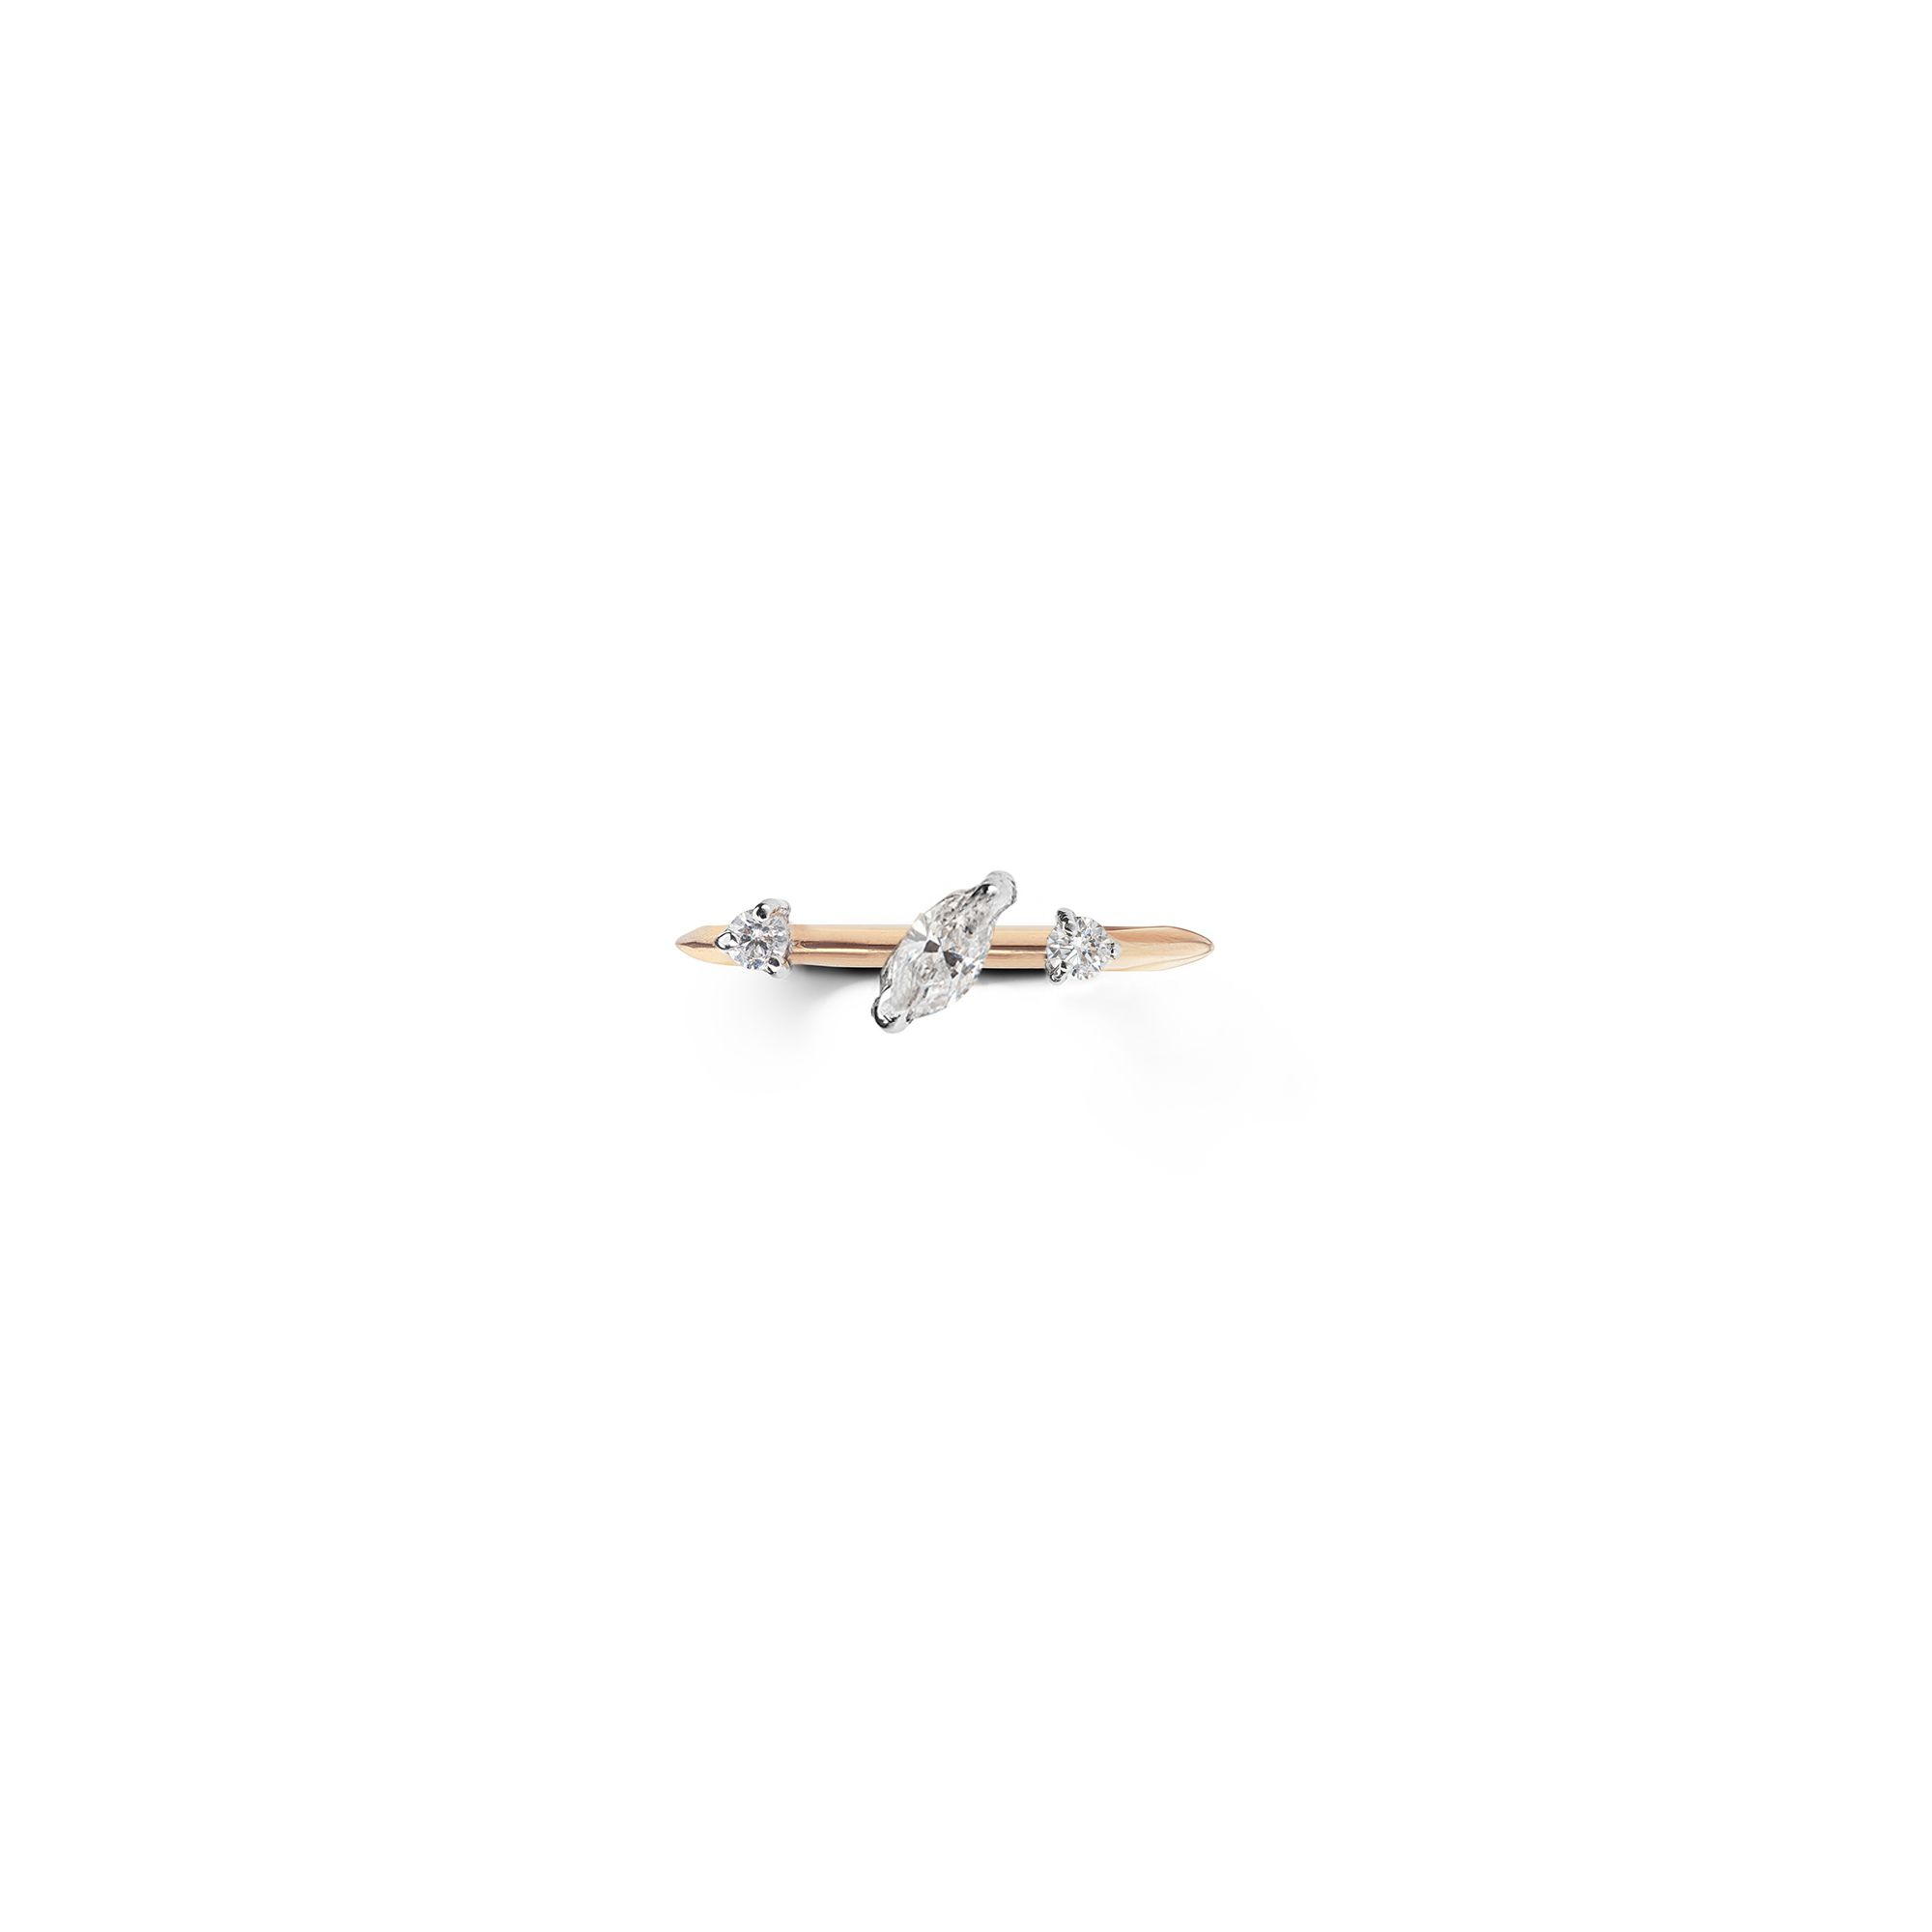 Pink gold 'Balance' ring with marquise Ring in pink gold and diamods